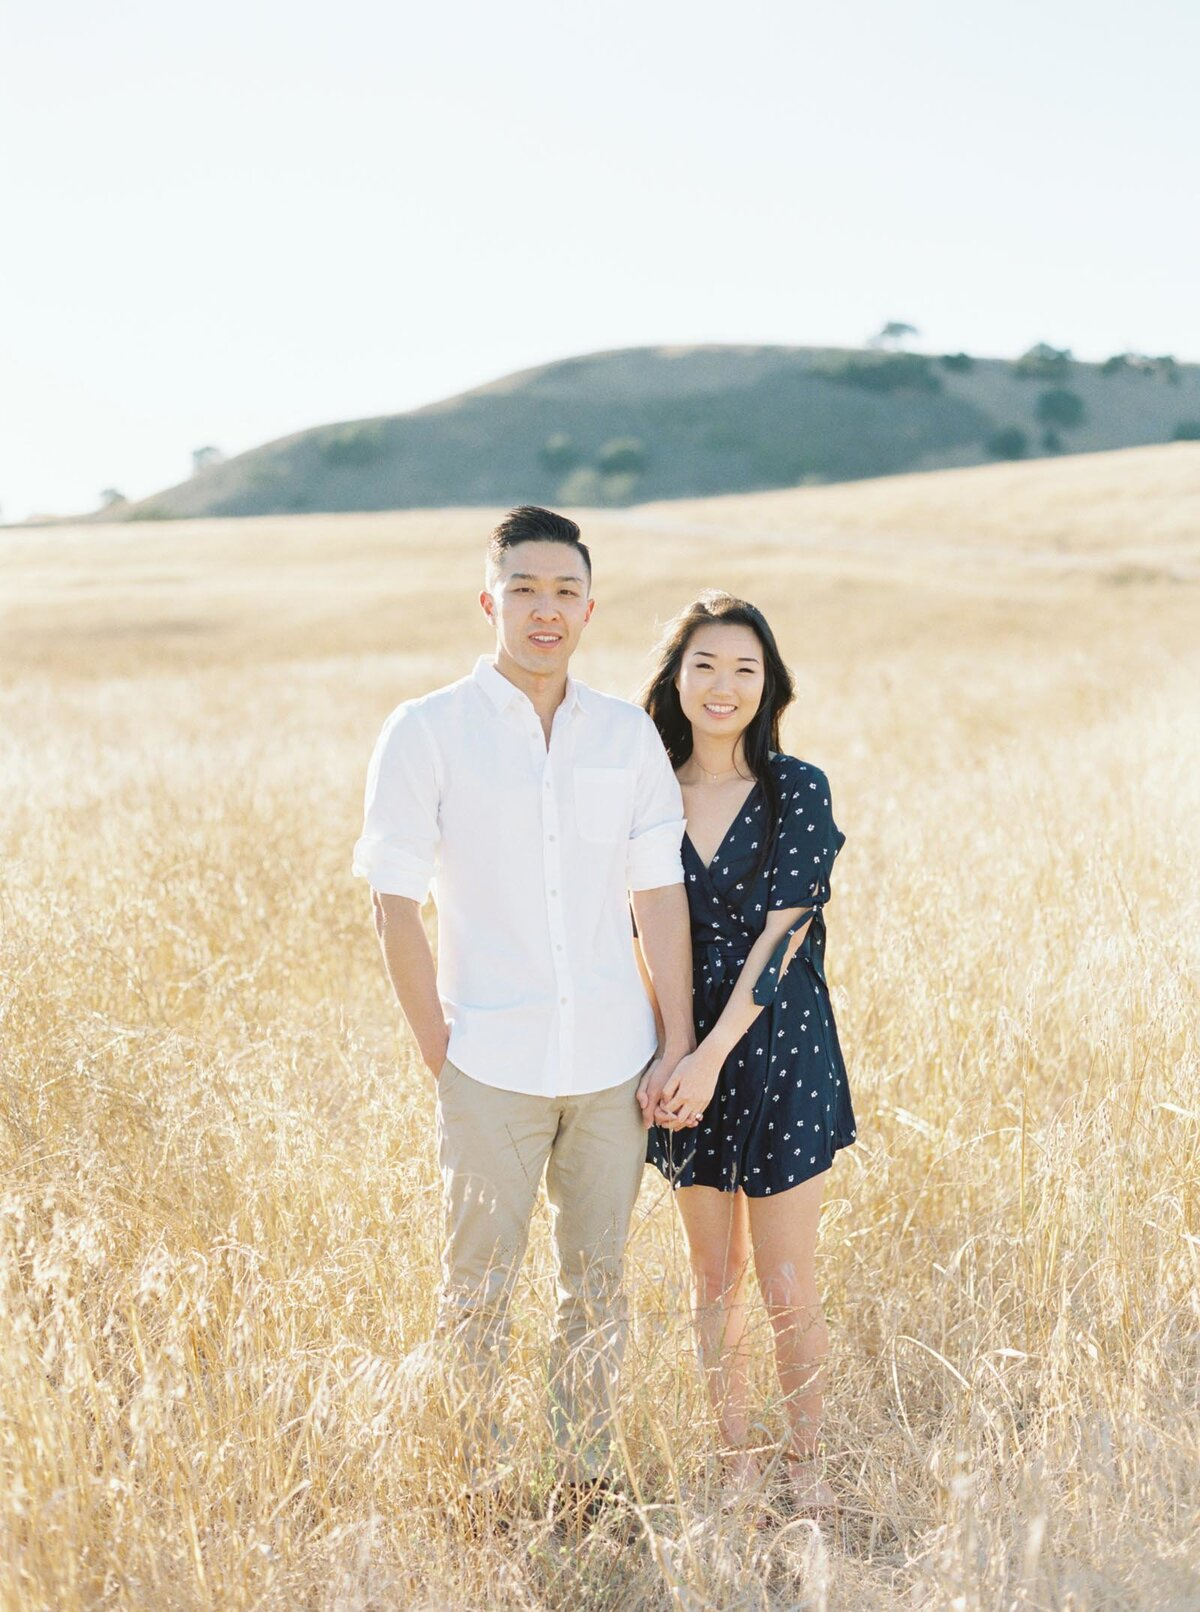 kestrel-park-engagement-photos-5